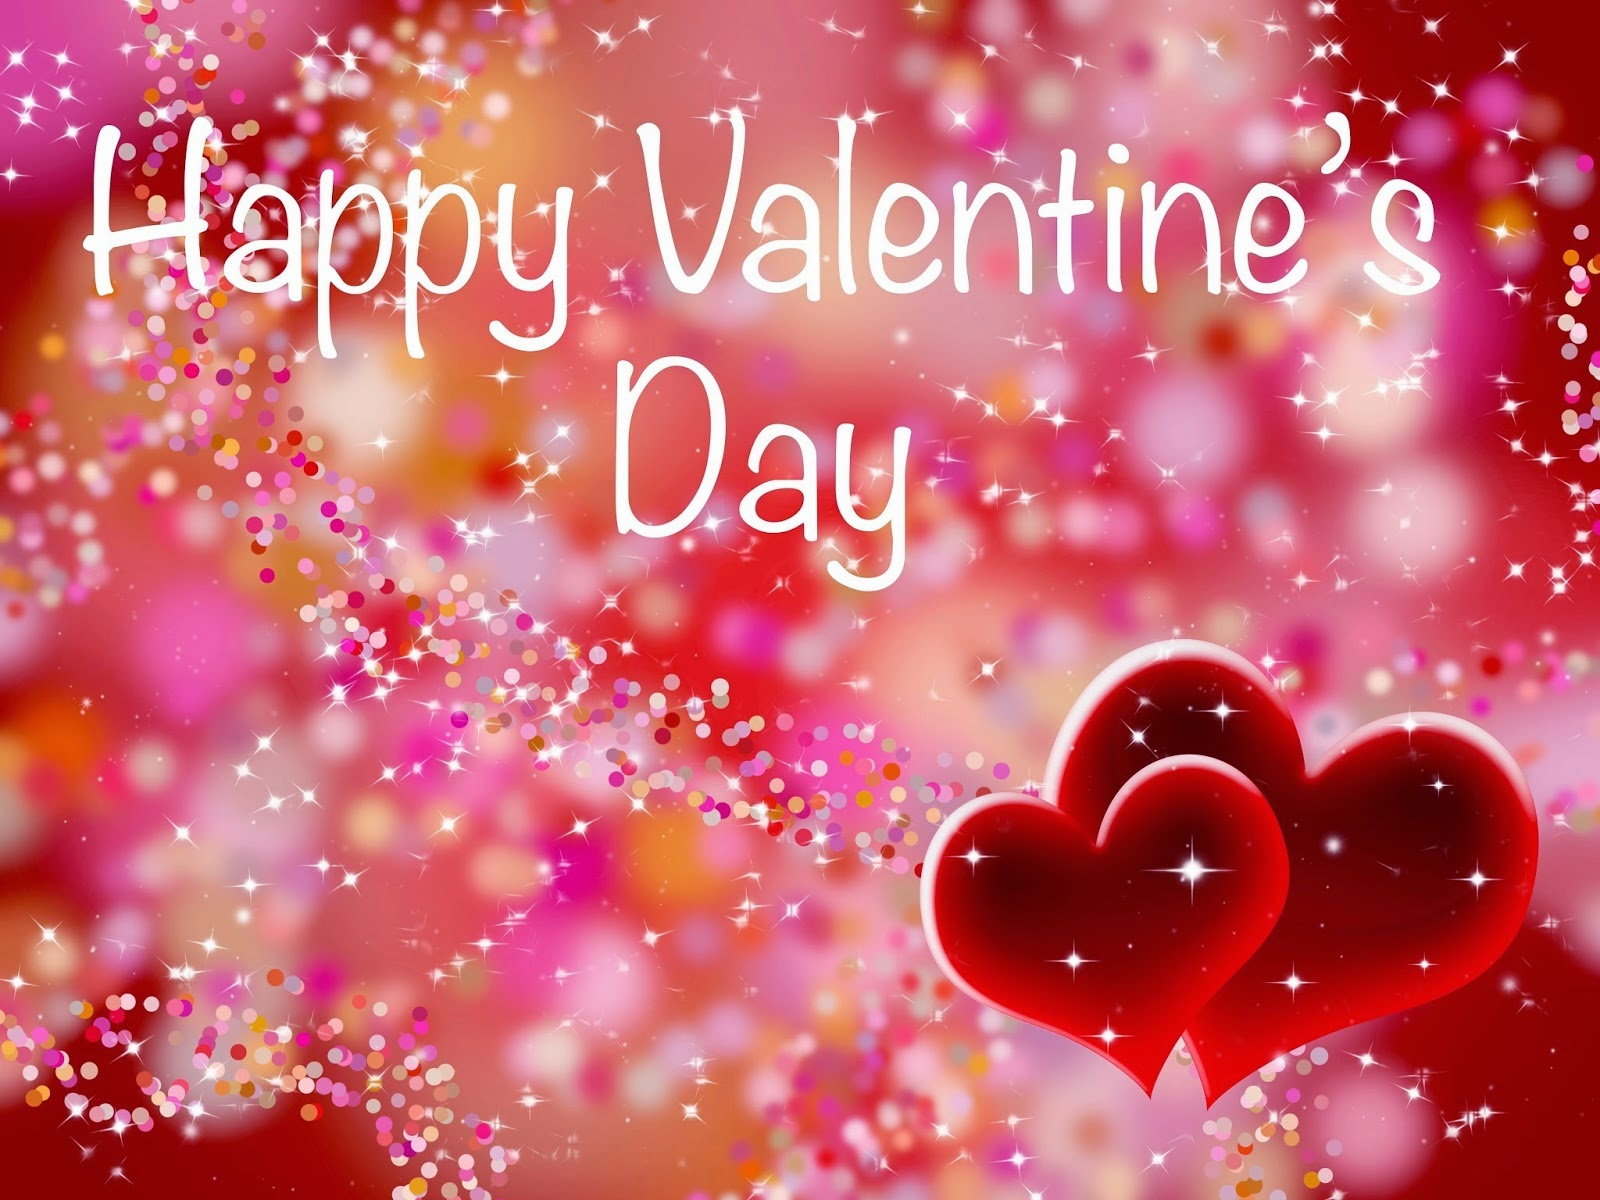 14 Feb Valentine Day Wallpaper 2018 For Mobile And Laptop